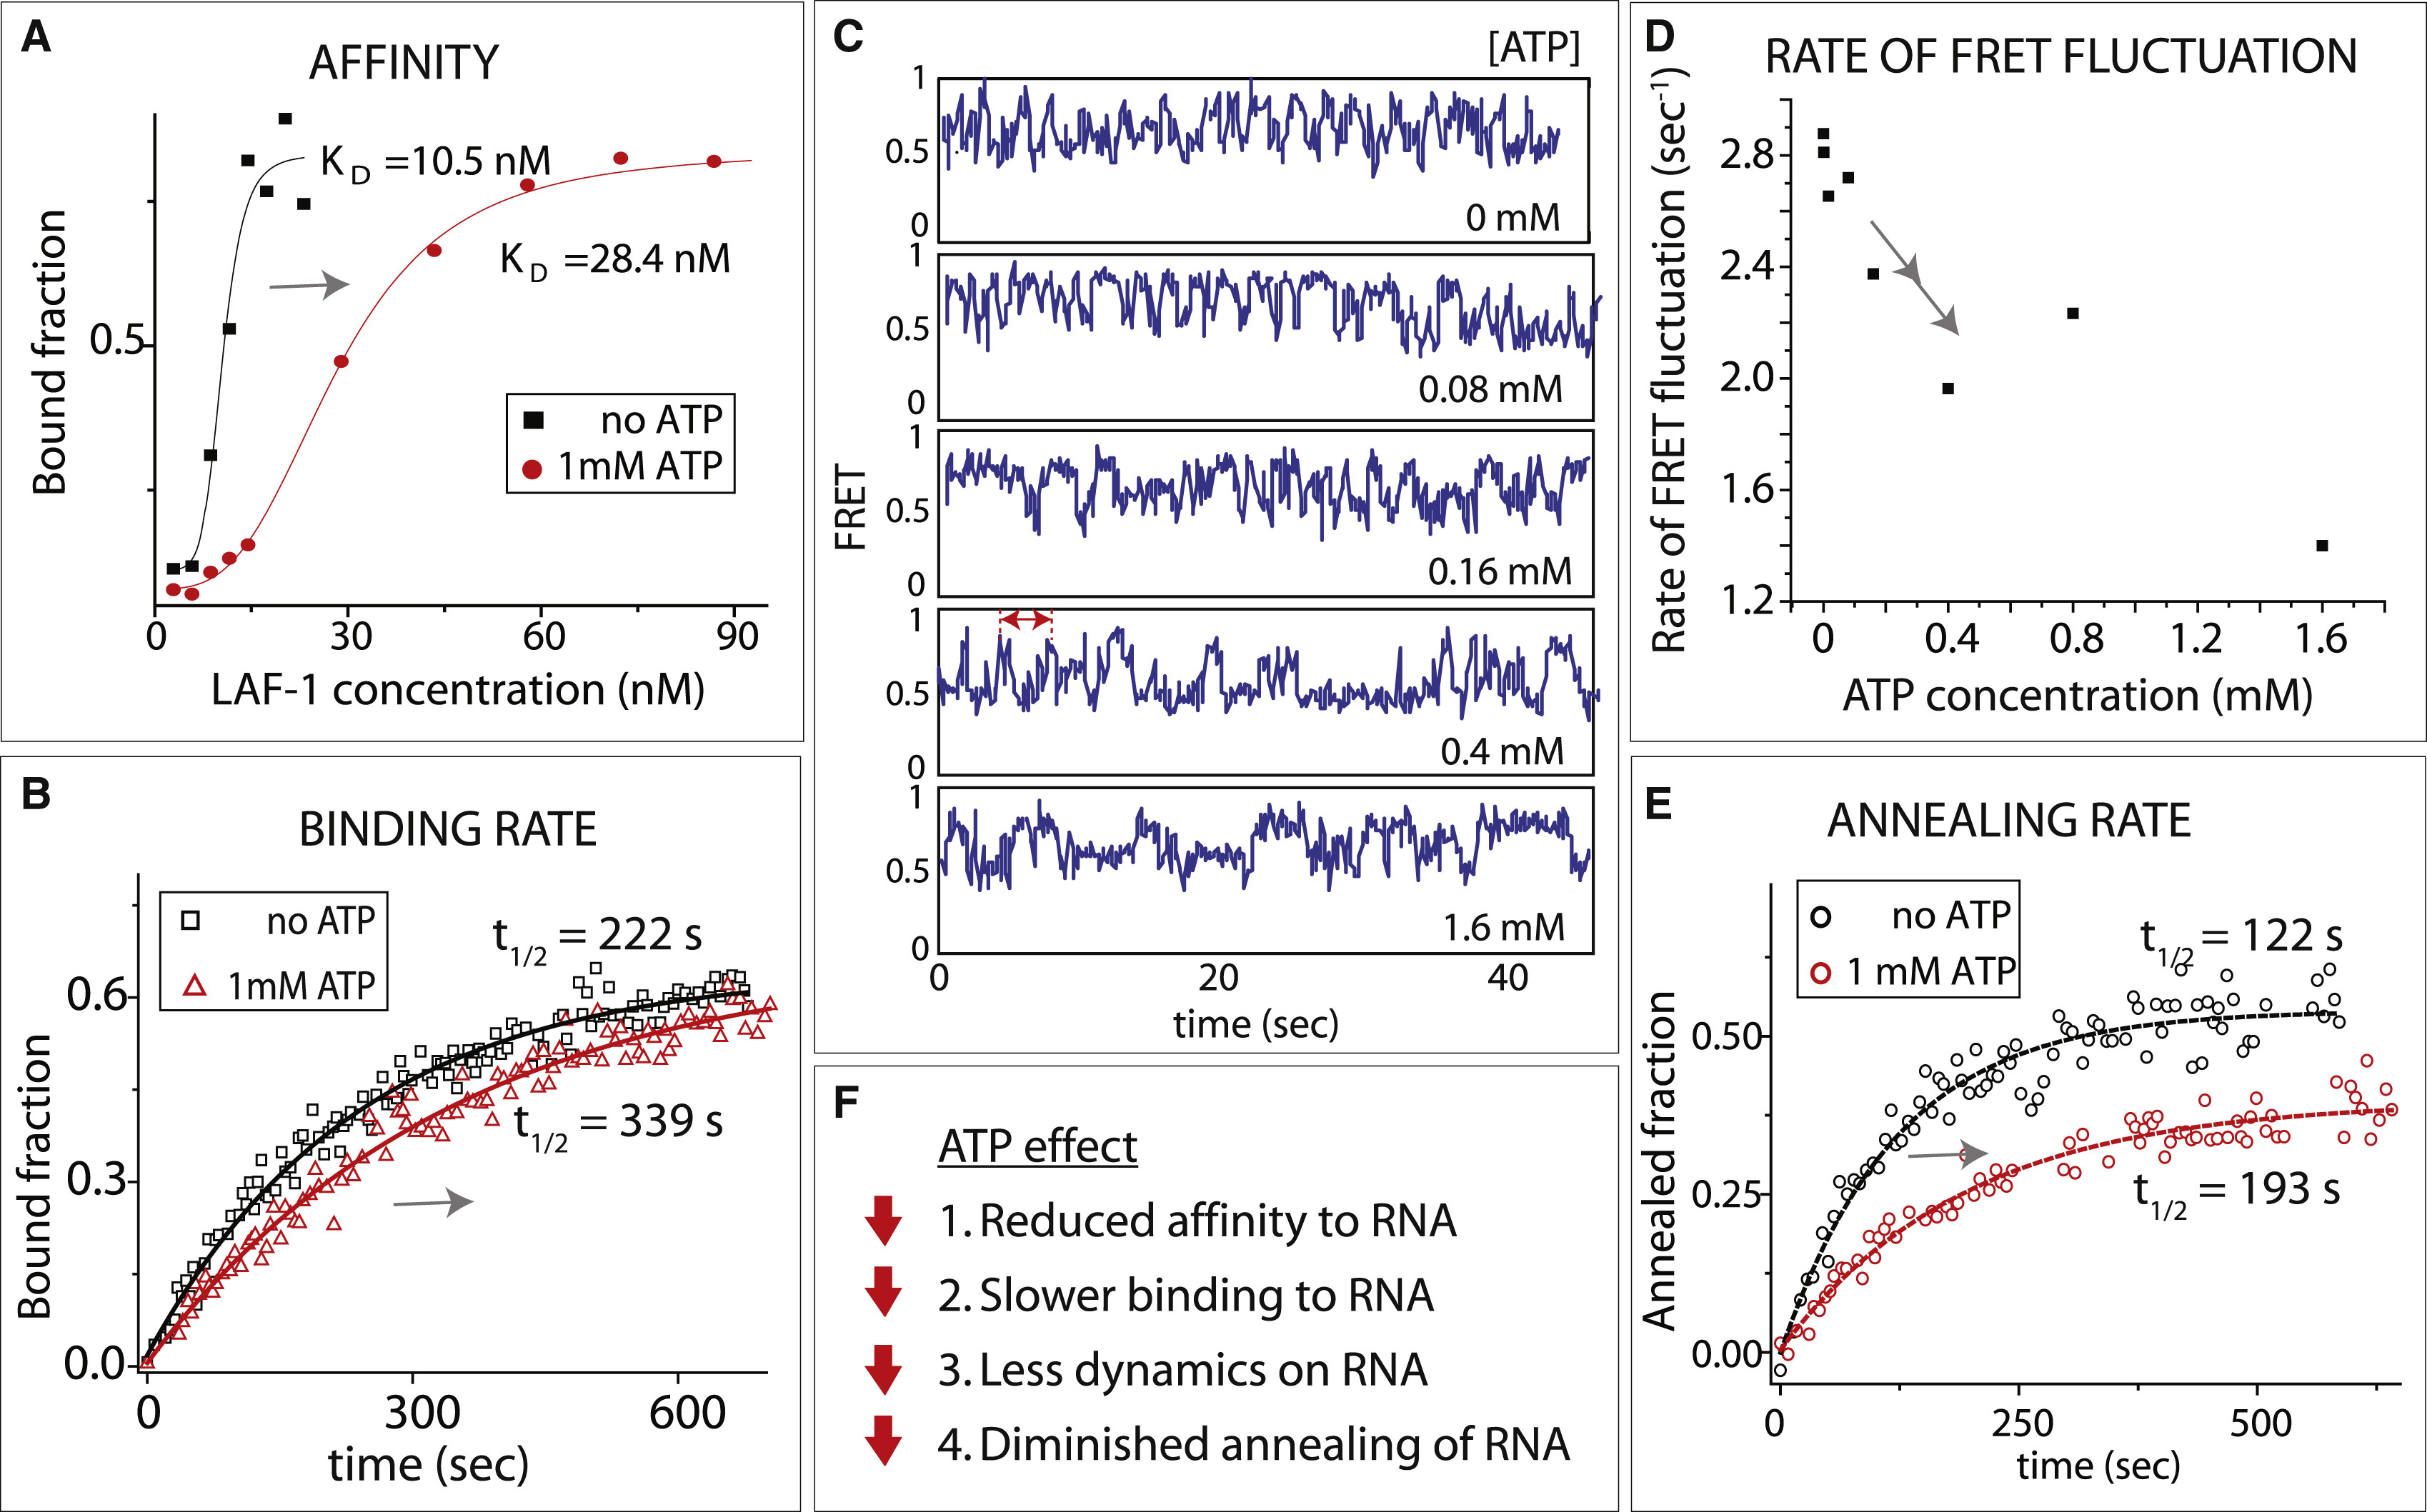 Rna Remodeling Activity Of Dead Box Proteins Tuned By Protein Concentration Rna Length And Atp